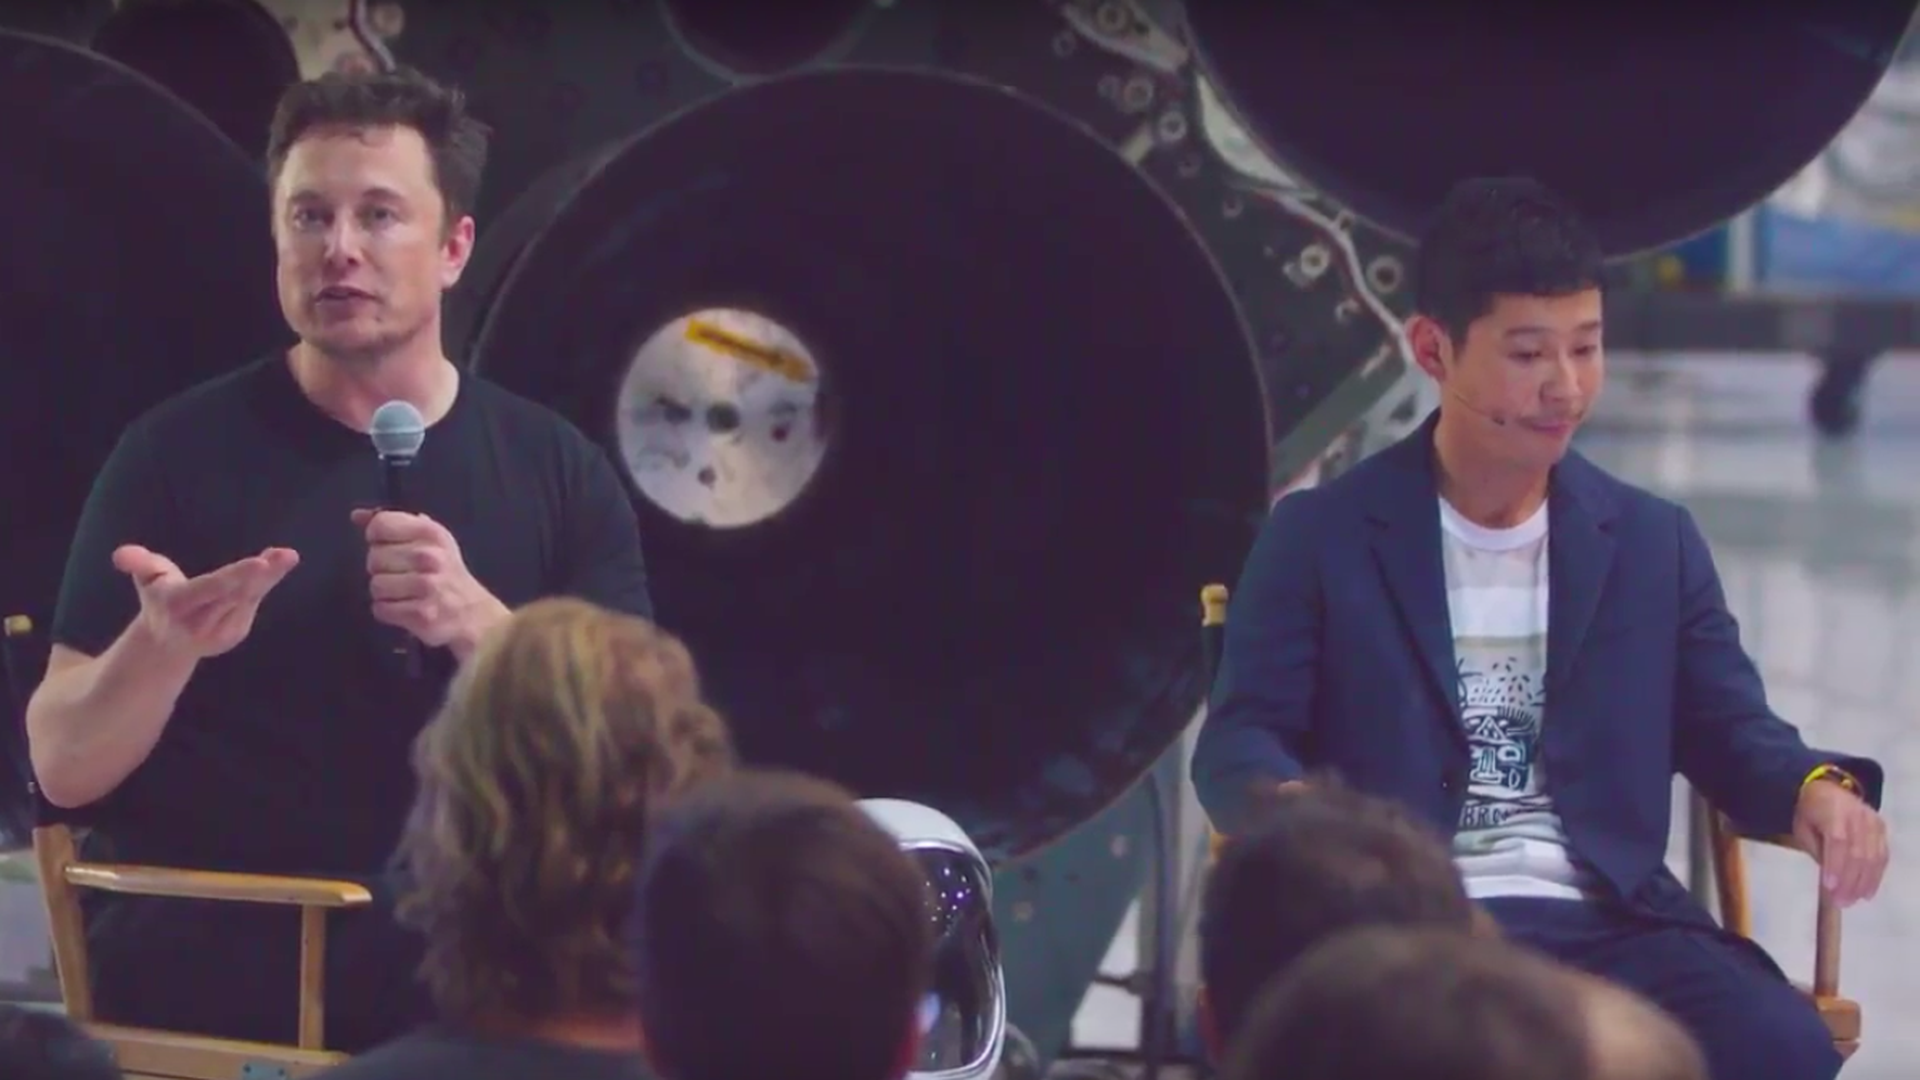 SpaceX CEO Elon Musk and Yusaku Maezawa during the livestream